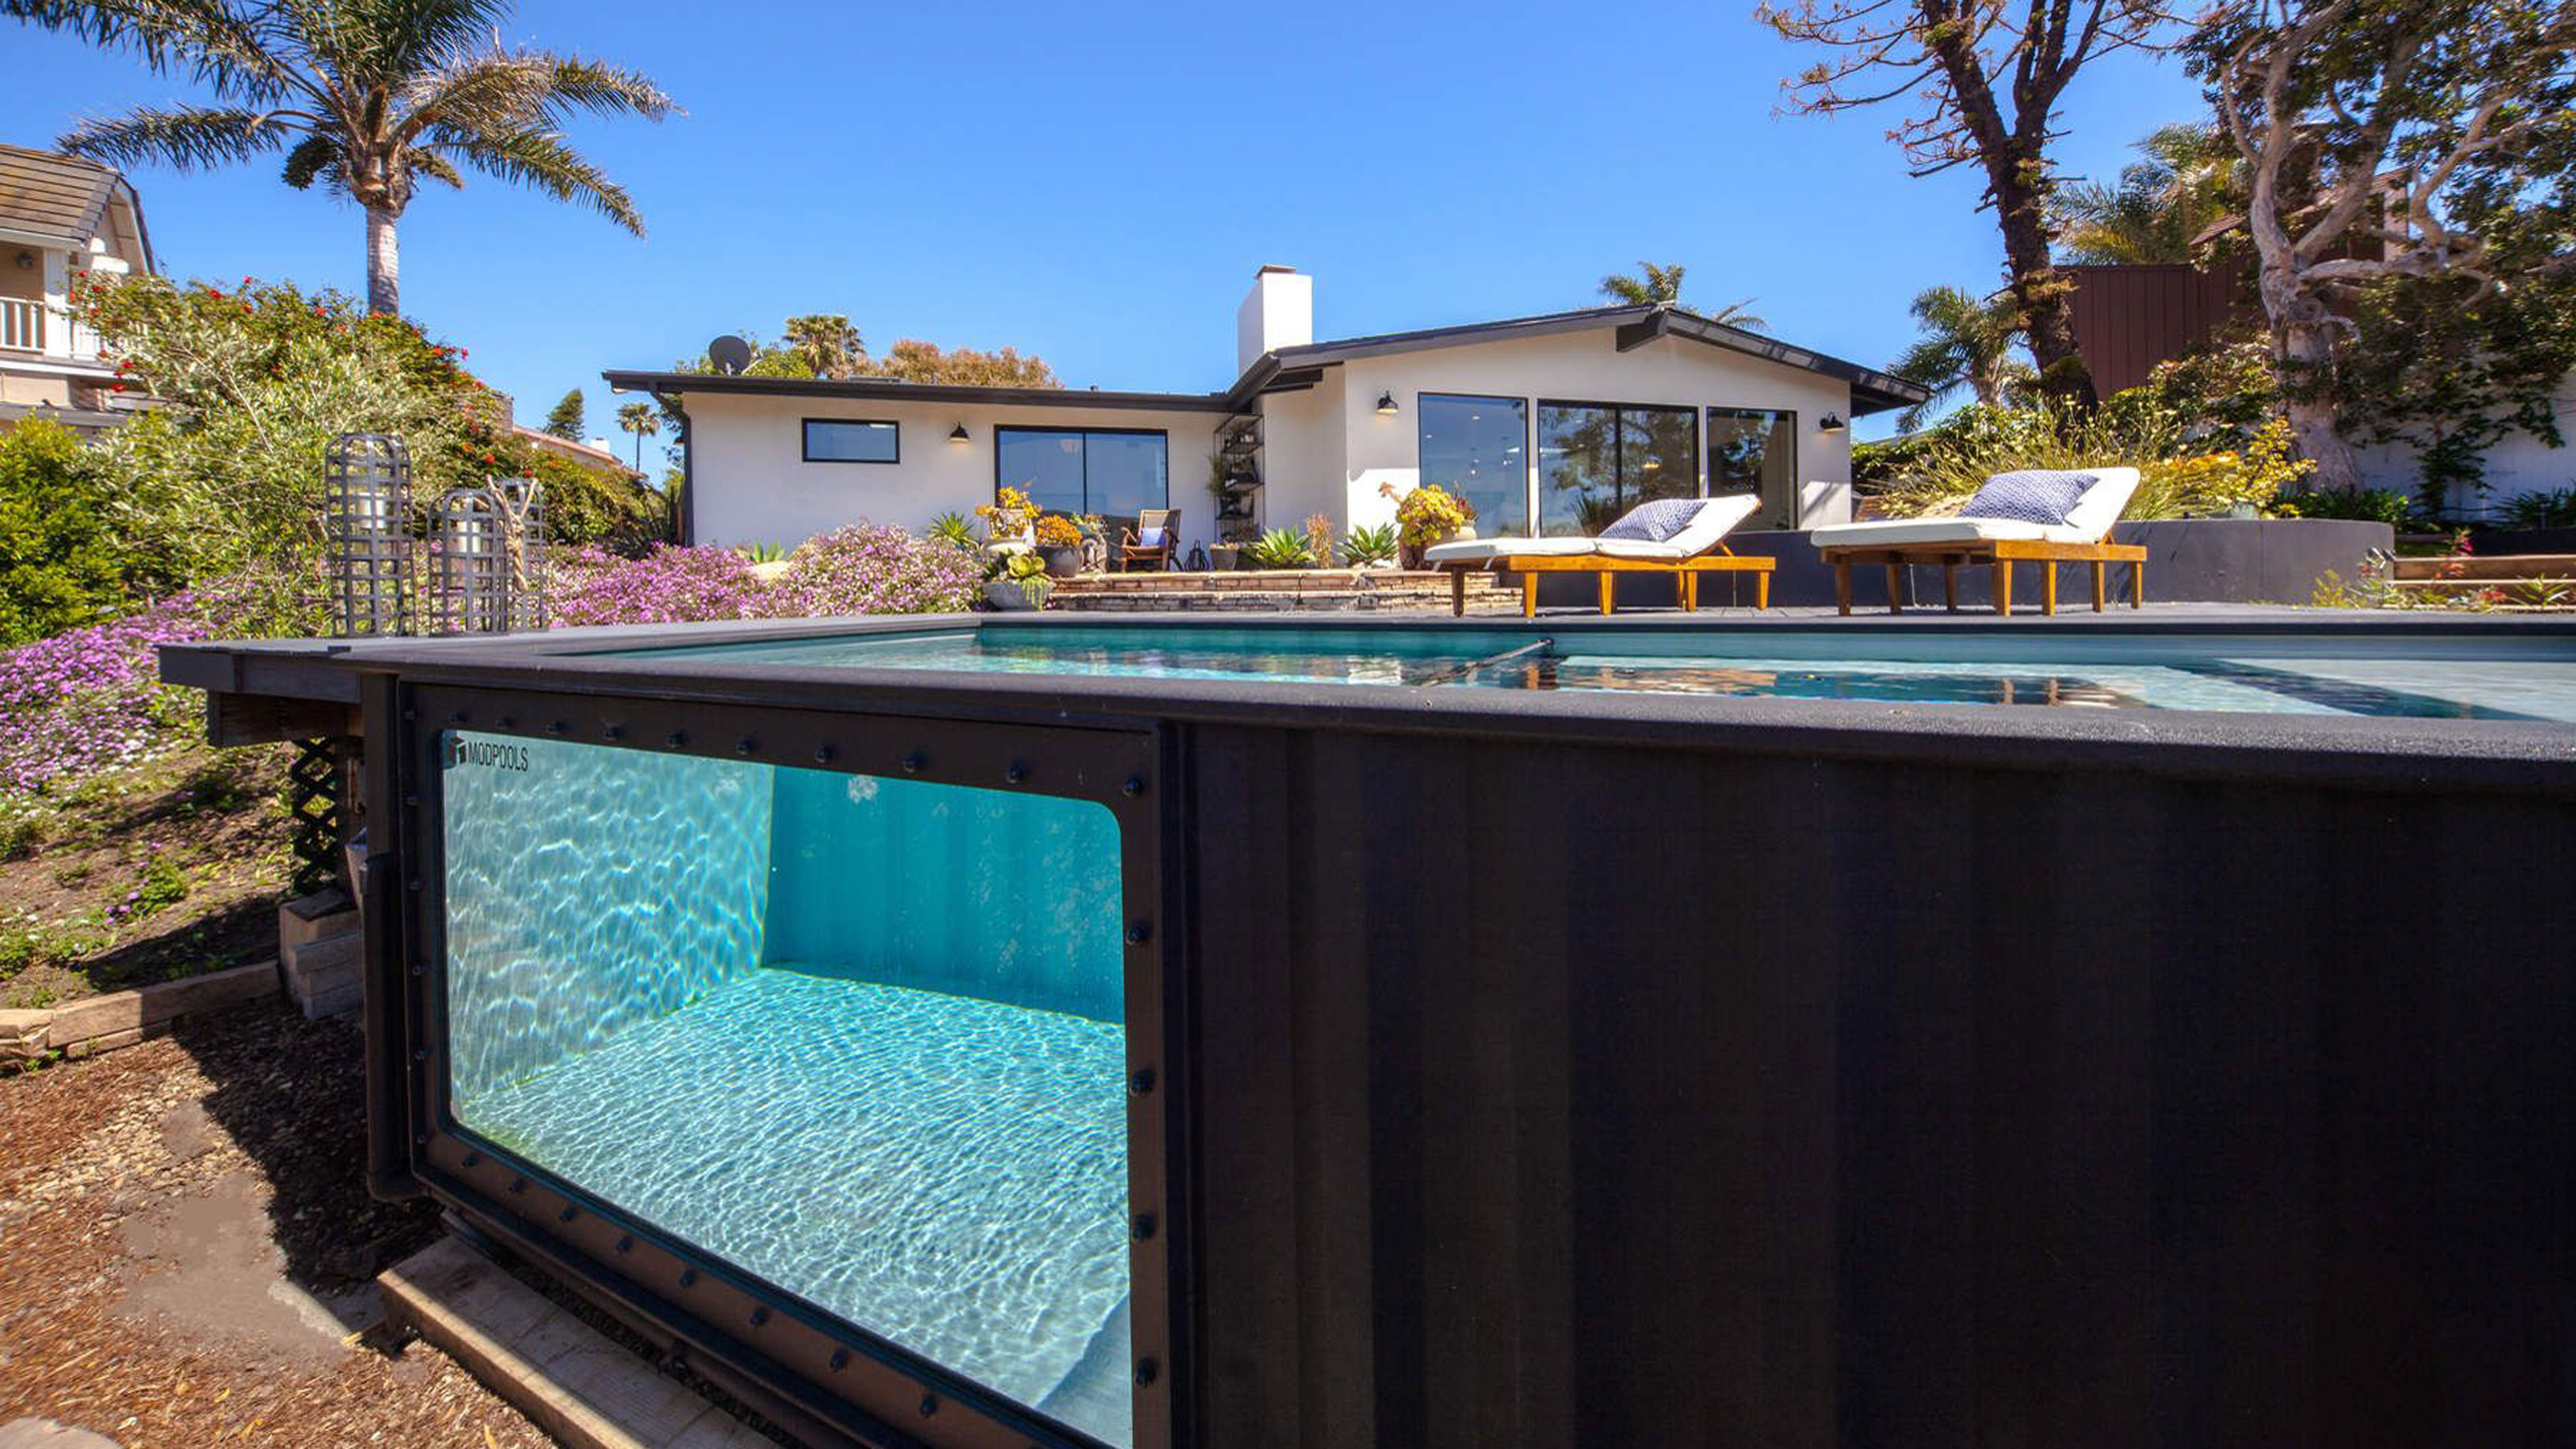 You can now buy a shipping container pool for your backyard ...